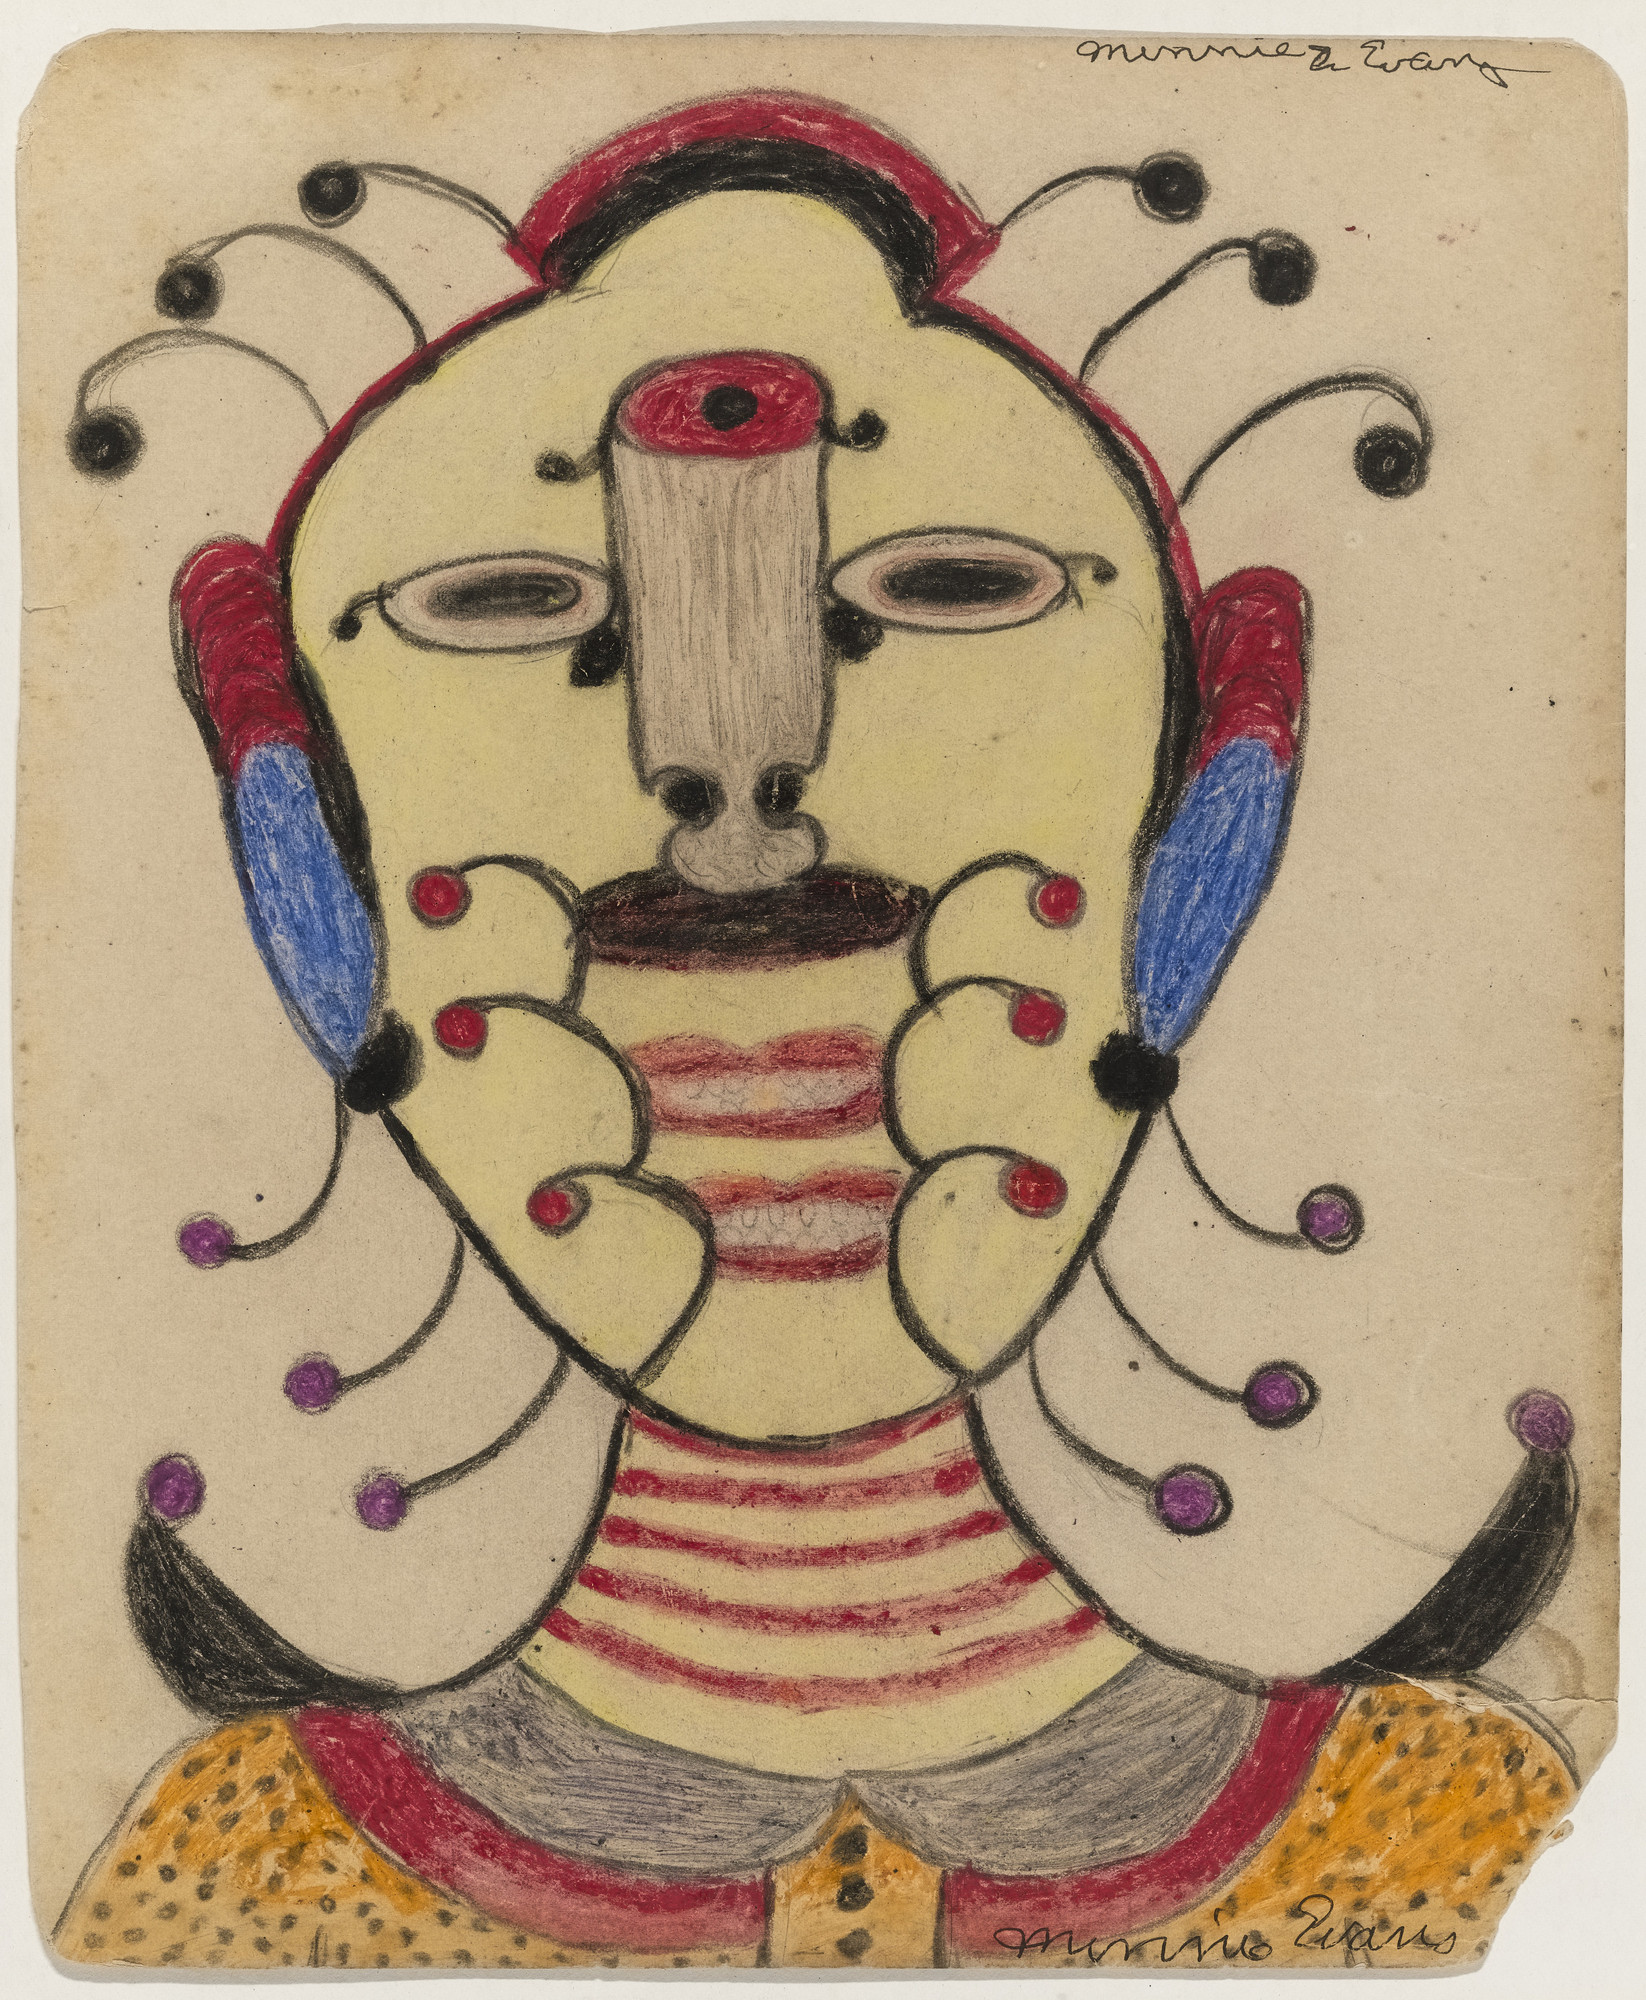 Minnie Evans. Untitled (Clown Creature). c. 1944